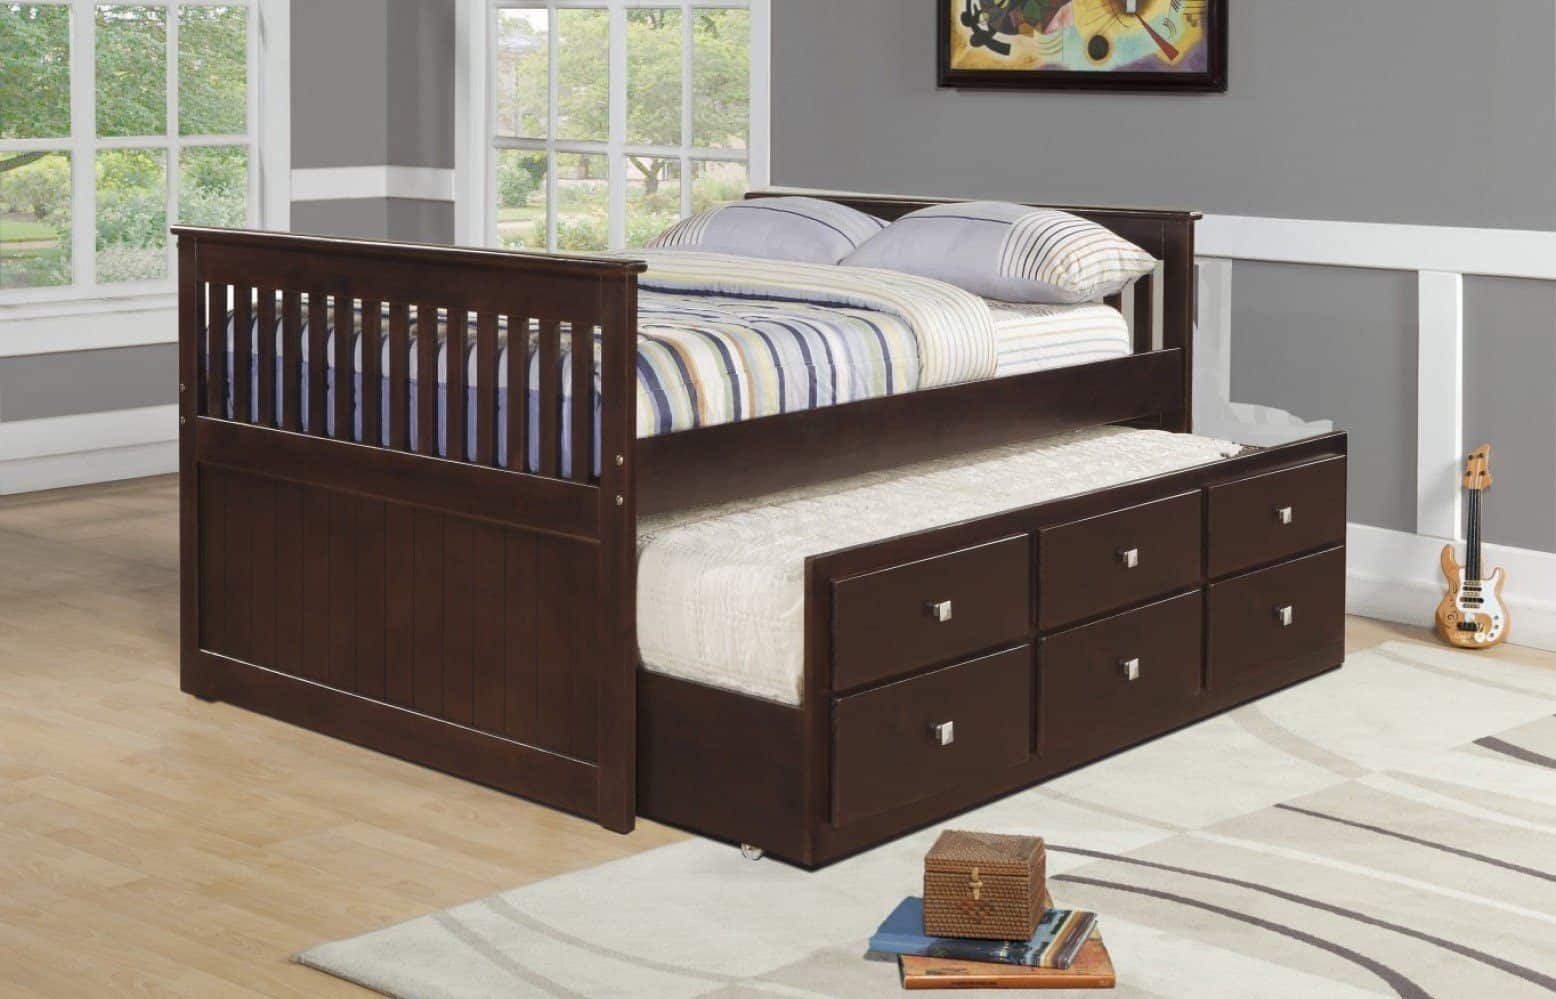 Twin-Sized Captains Bed